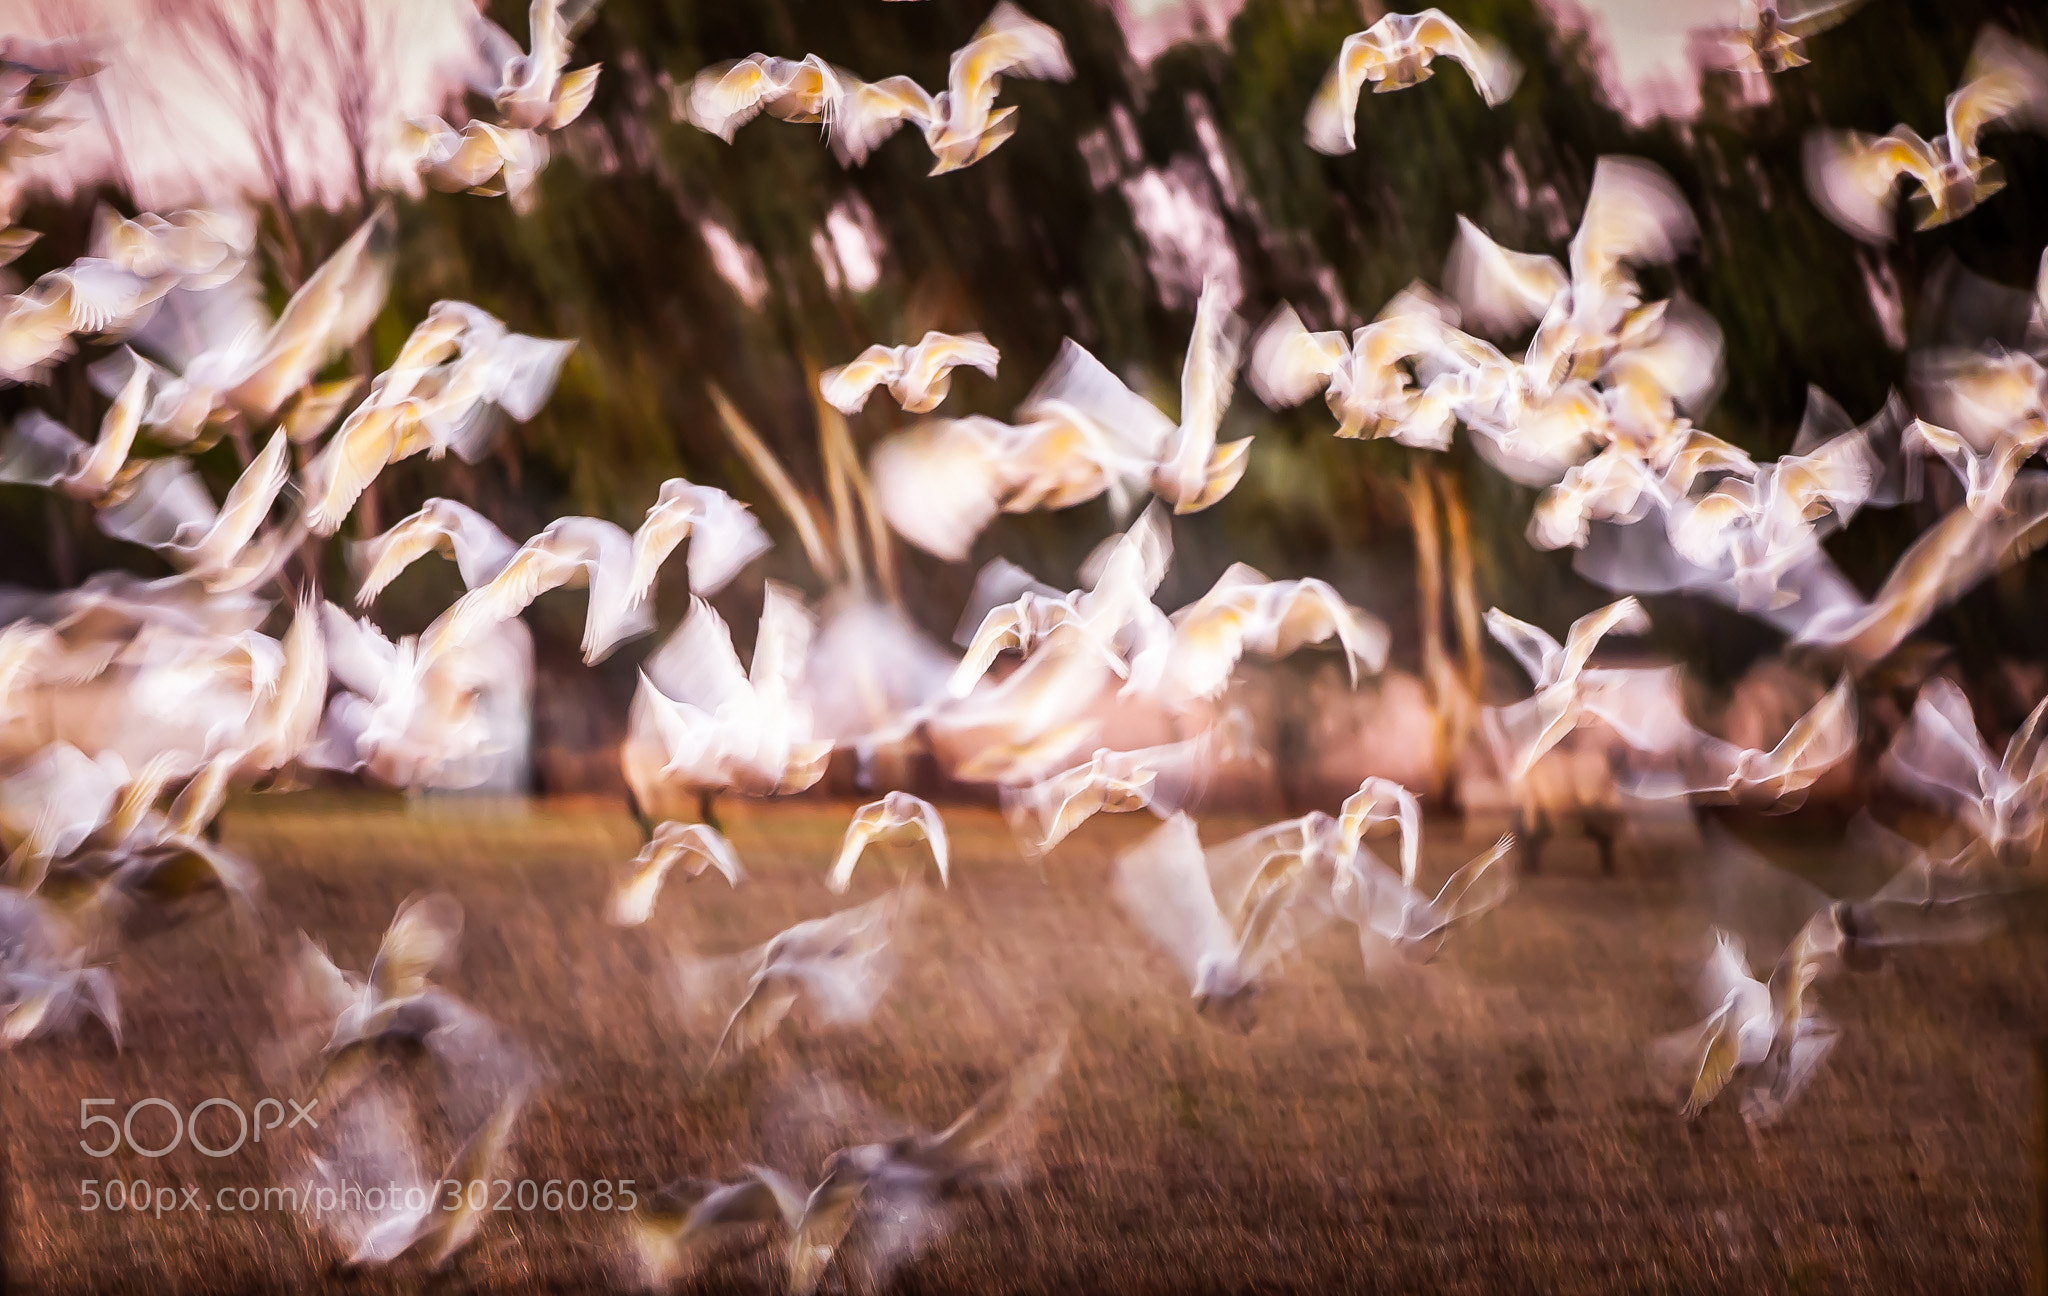 Photograph Day 462, Corella Cacophony by Robert Rath on 500px